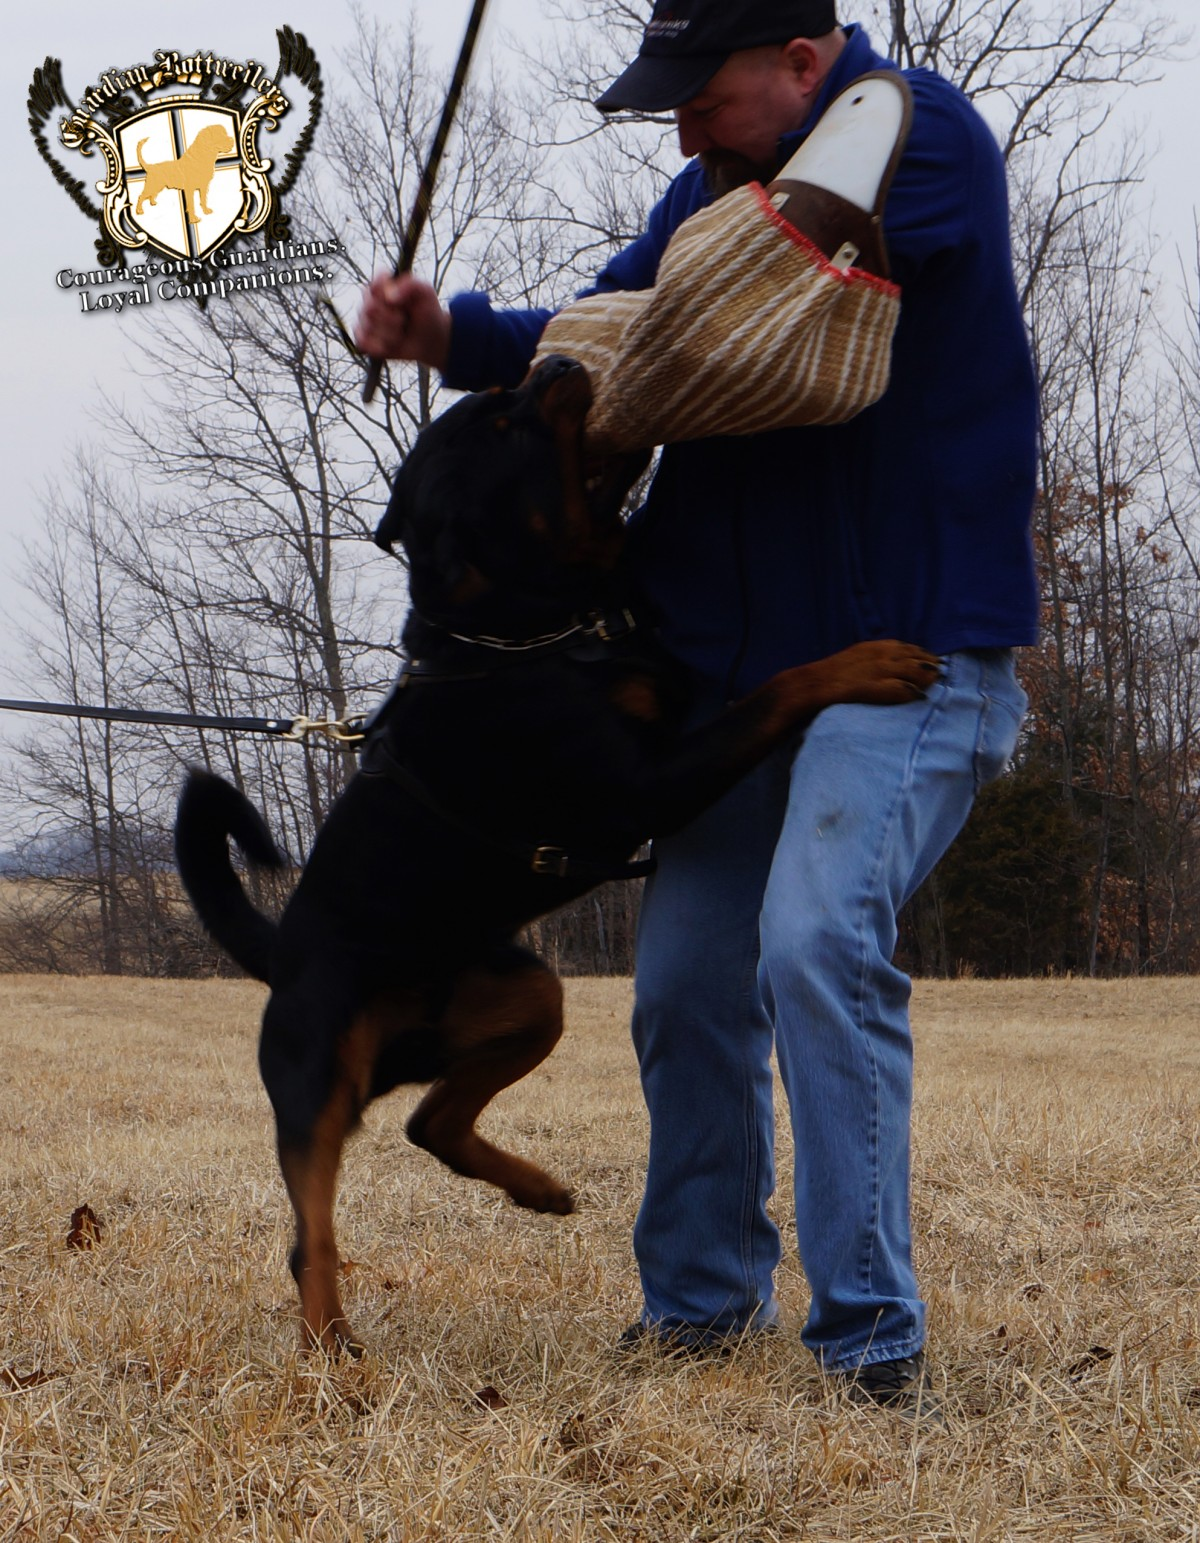 Guardian Rottweilers Ocho protection